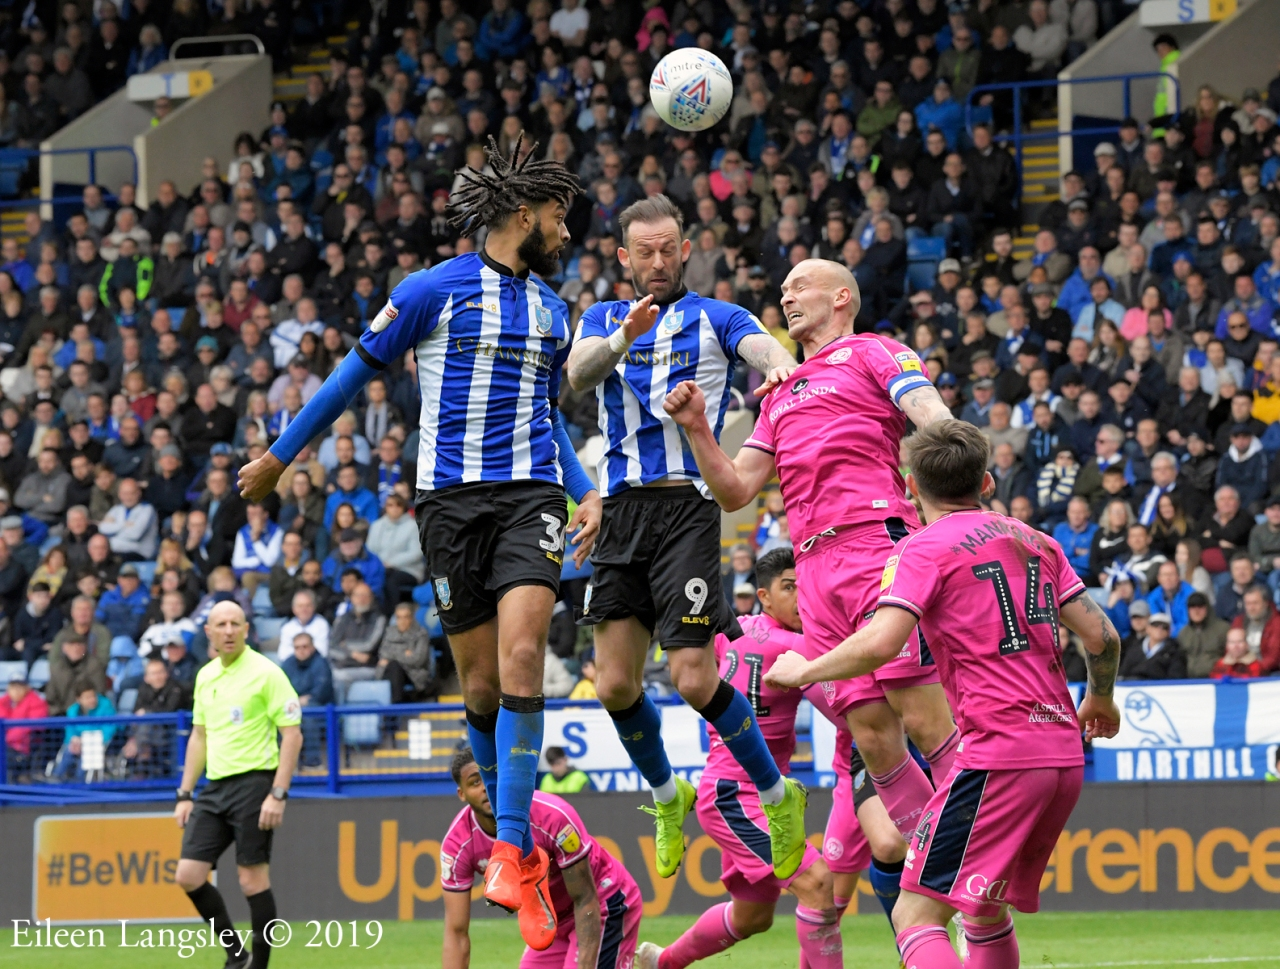 Protected: Sheffield Wednesday v Queens Park Rangers